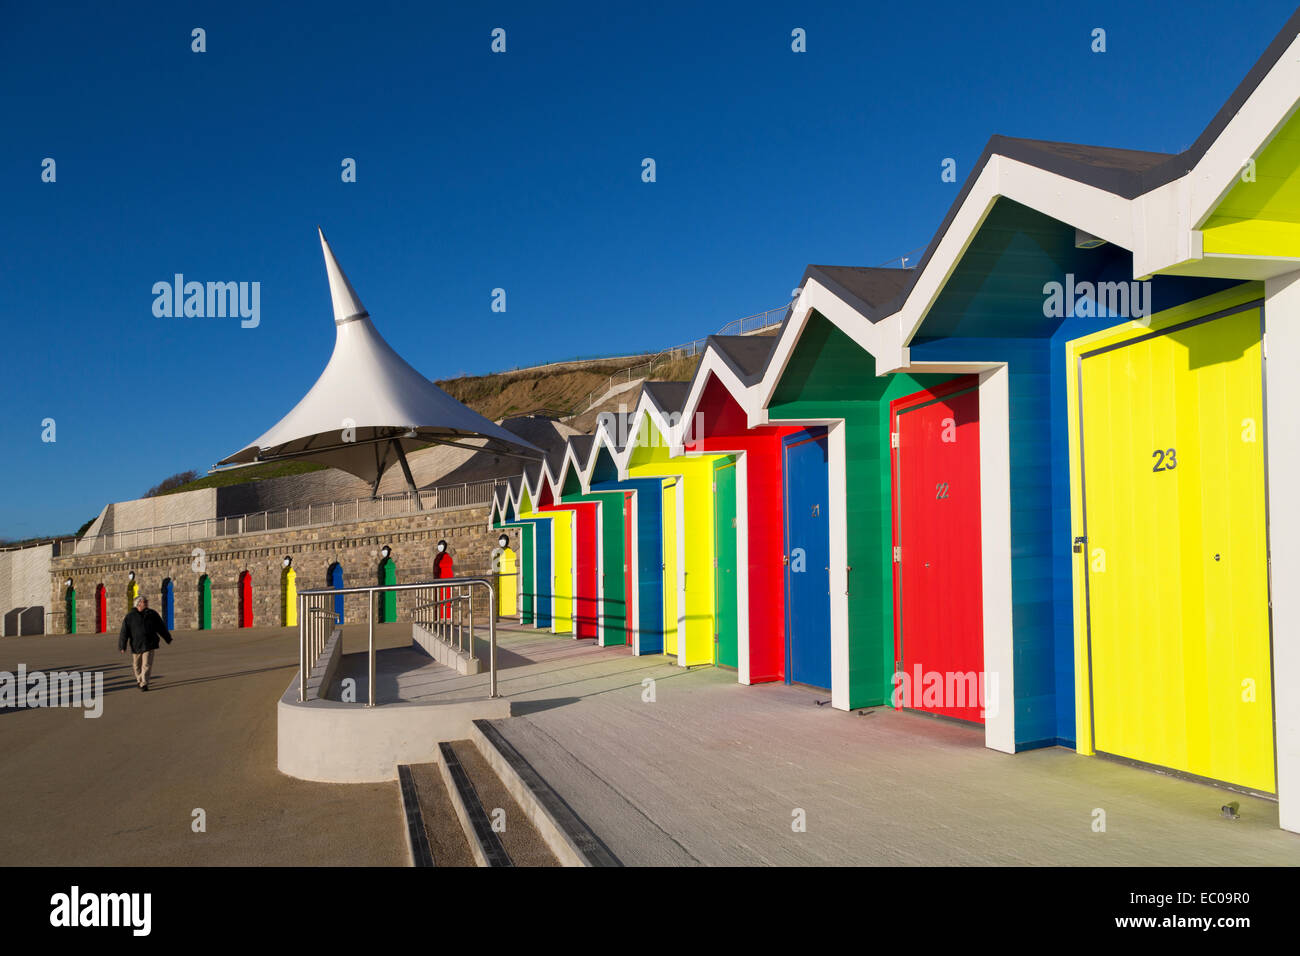 Brightly coloured beach huts, Barry Island, Wales, UK Stock Photo